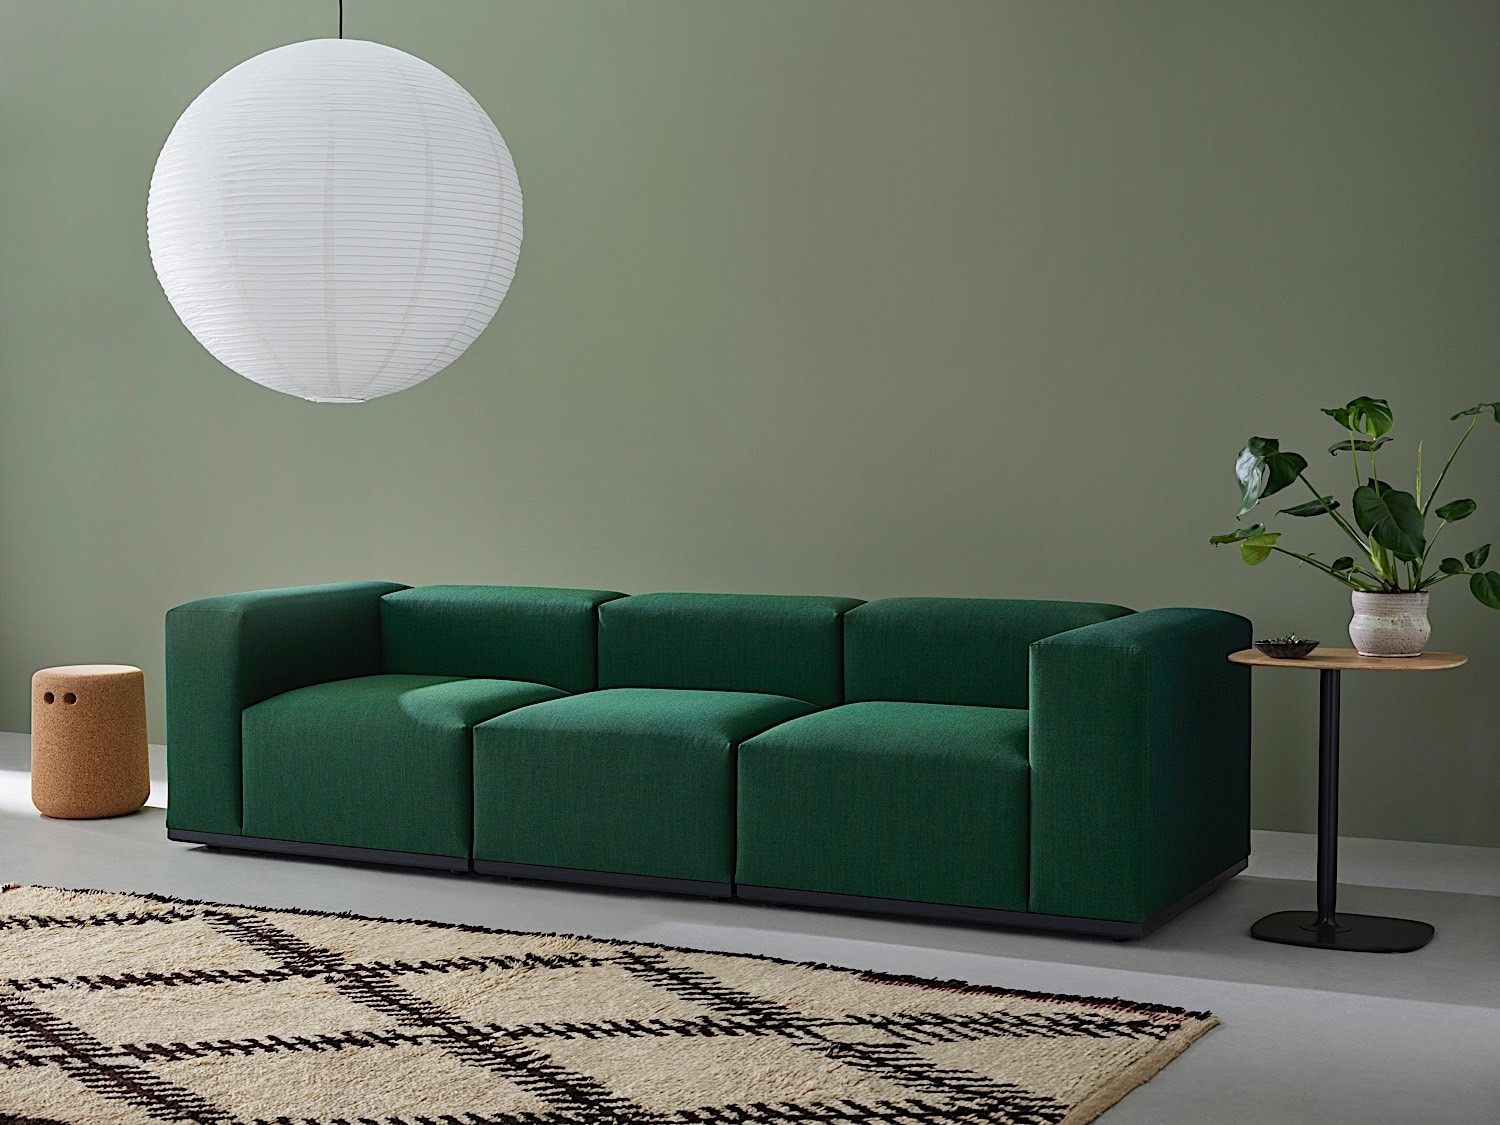 Geta Low Sofa — Arik Levy